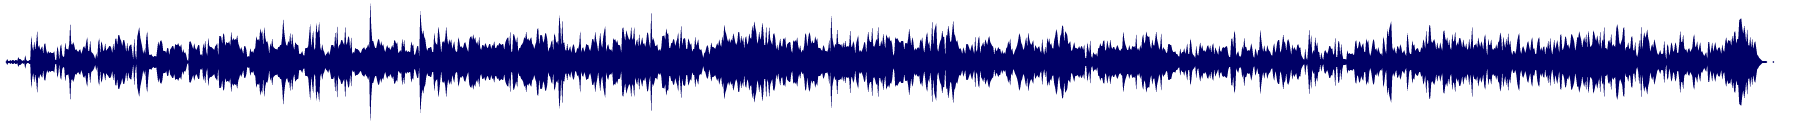 waveform of track #69035